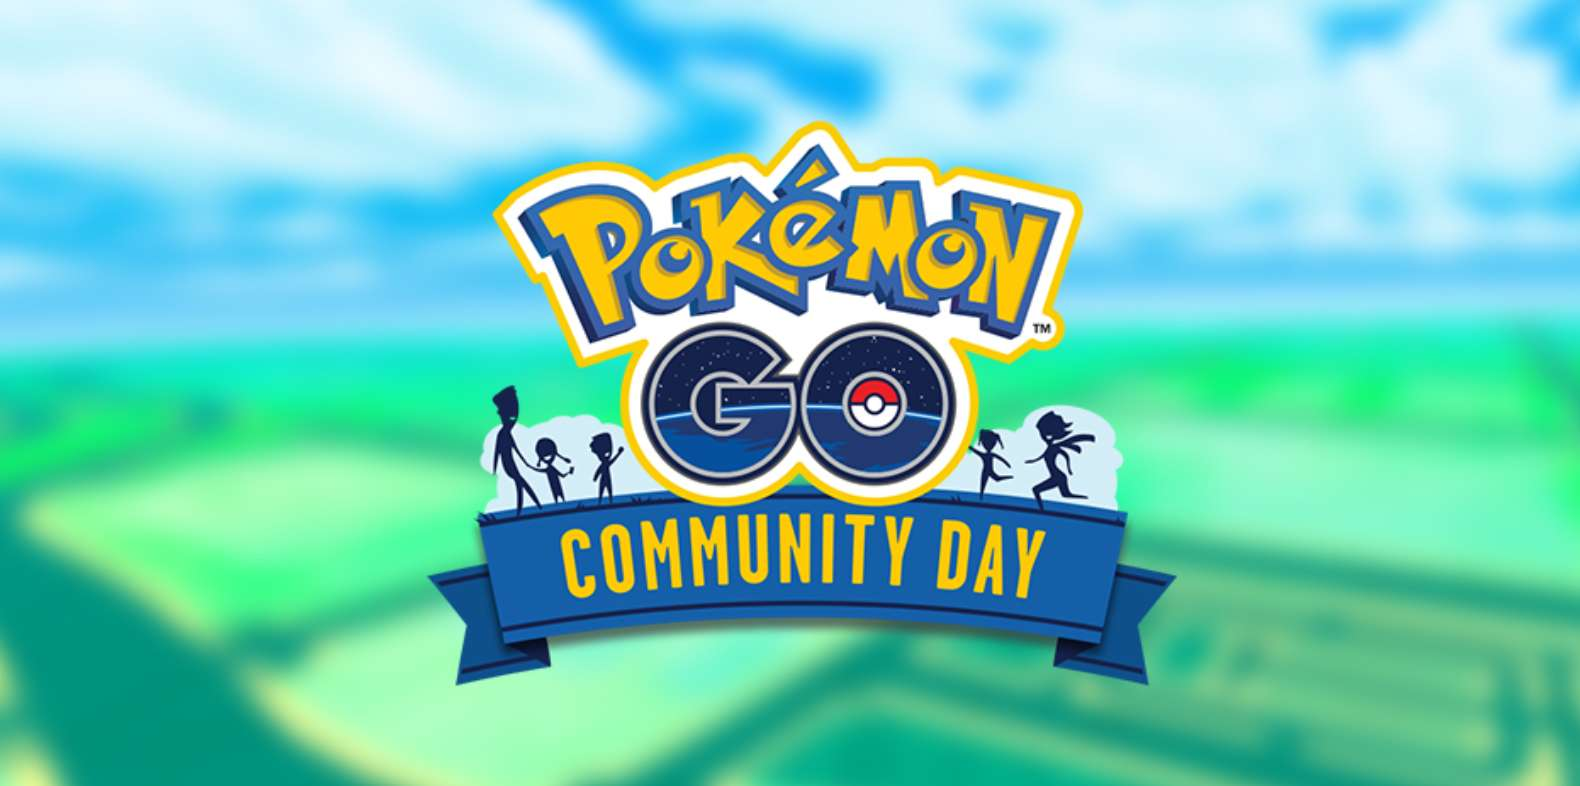 Pokemon Go Team Will Allow Players To Vote On The Community Day Pokemon For February